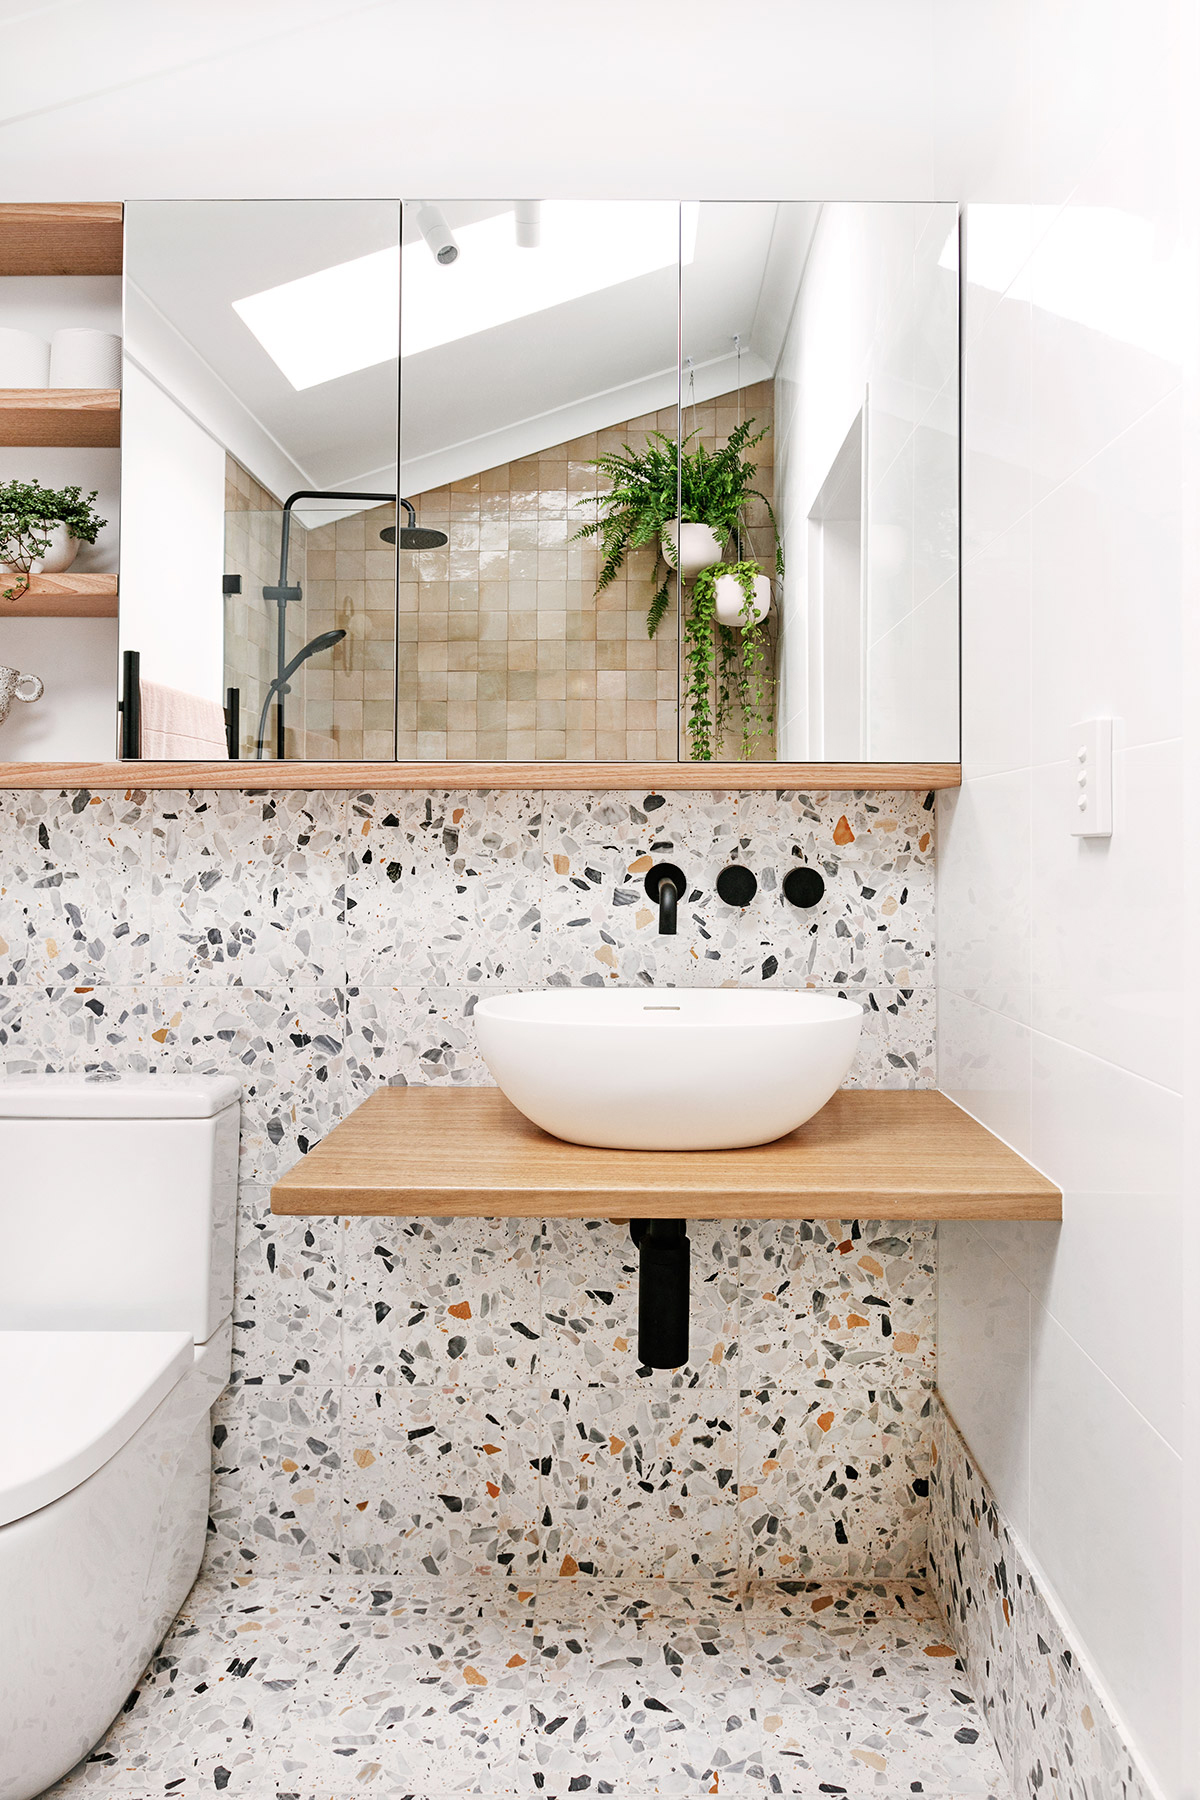 Terrazzo bathrooms that don't use white tiles